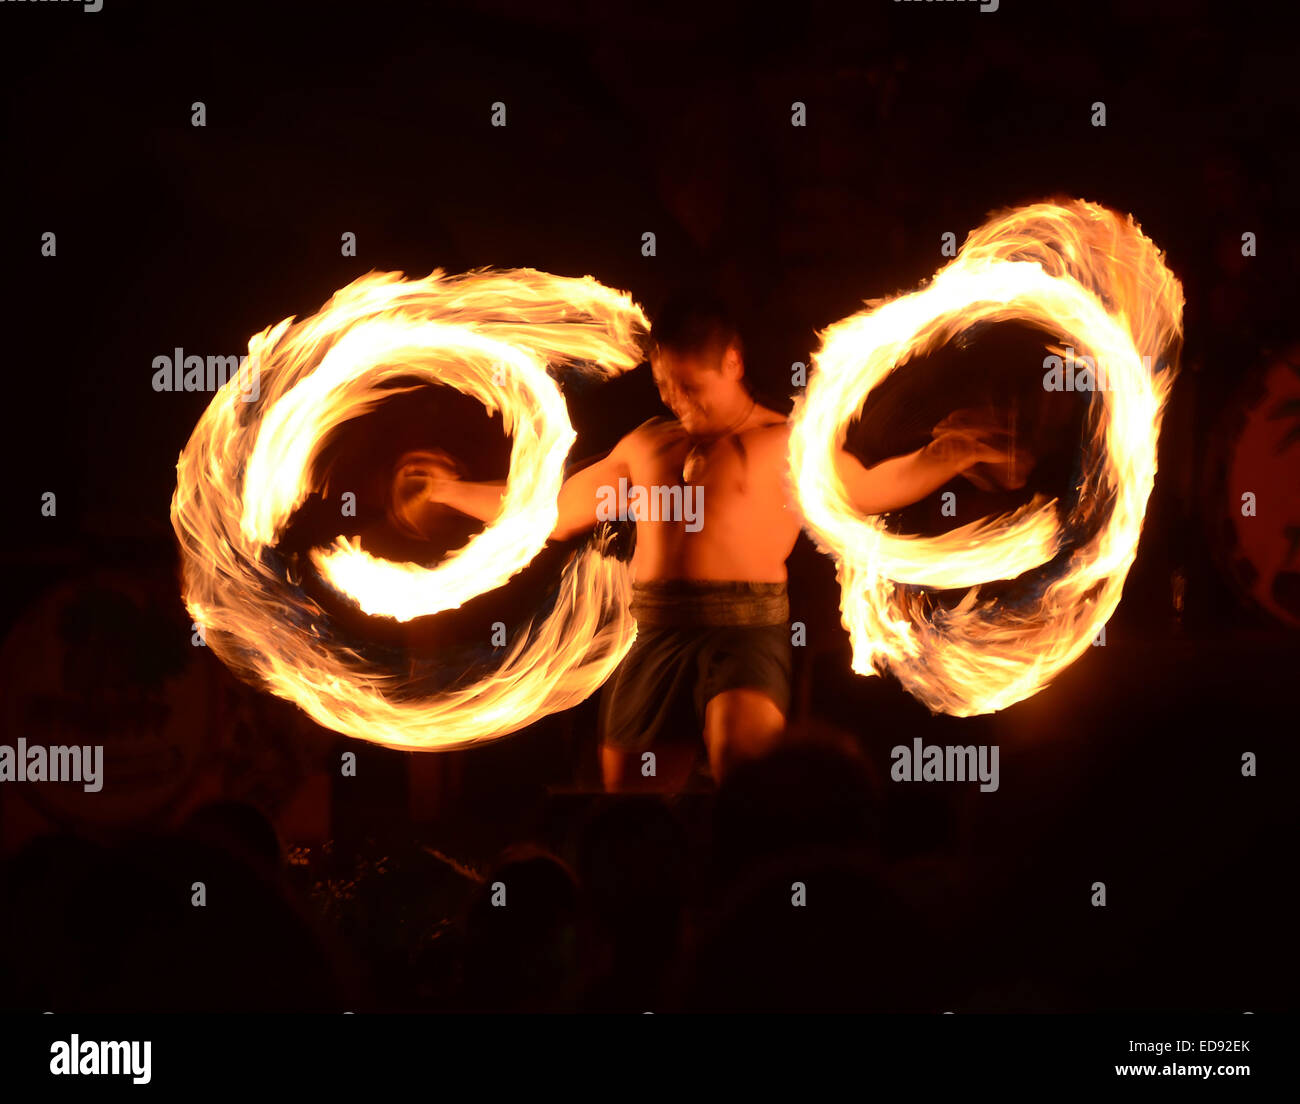 LAHAINA - MARCH 22: Polynesian dancer demonstrates fire dancing during outdoors cultural activities on March 22, - Stock Image